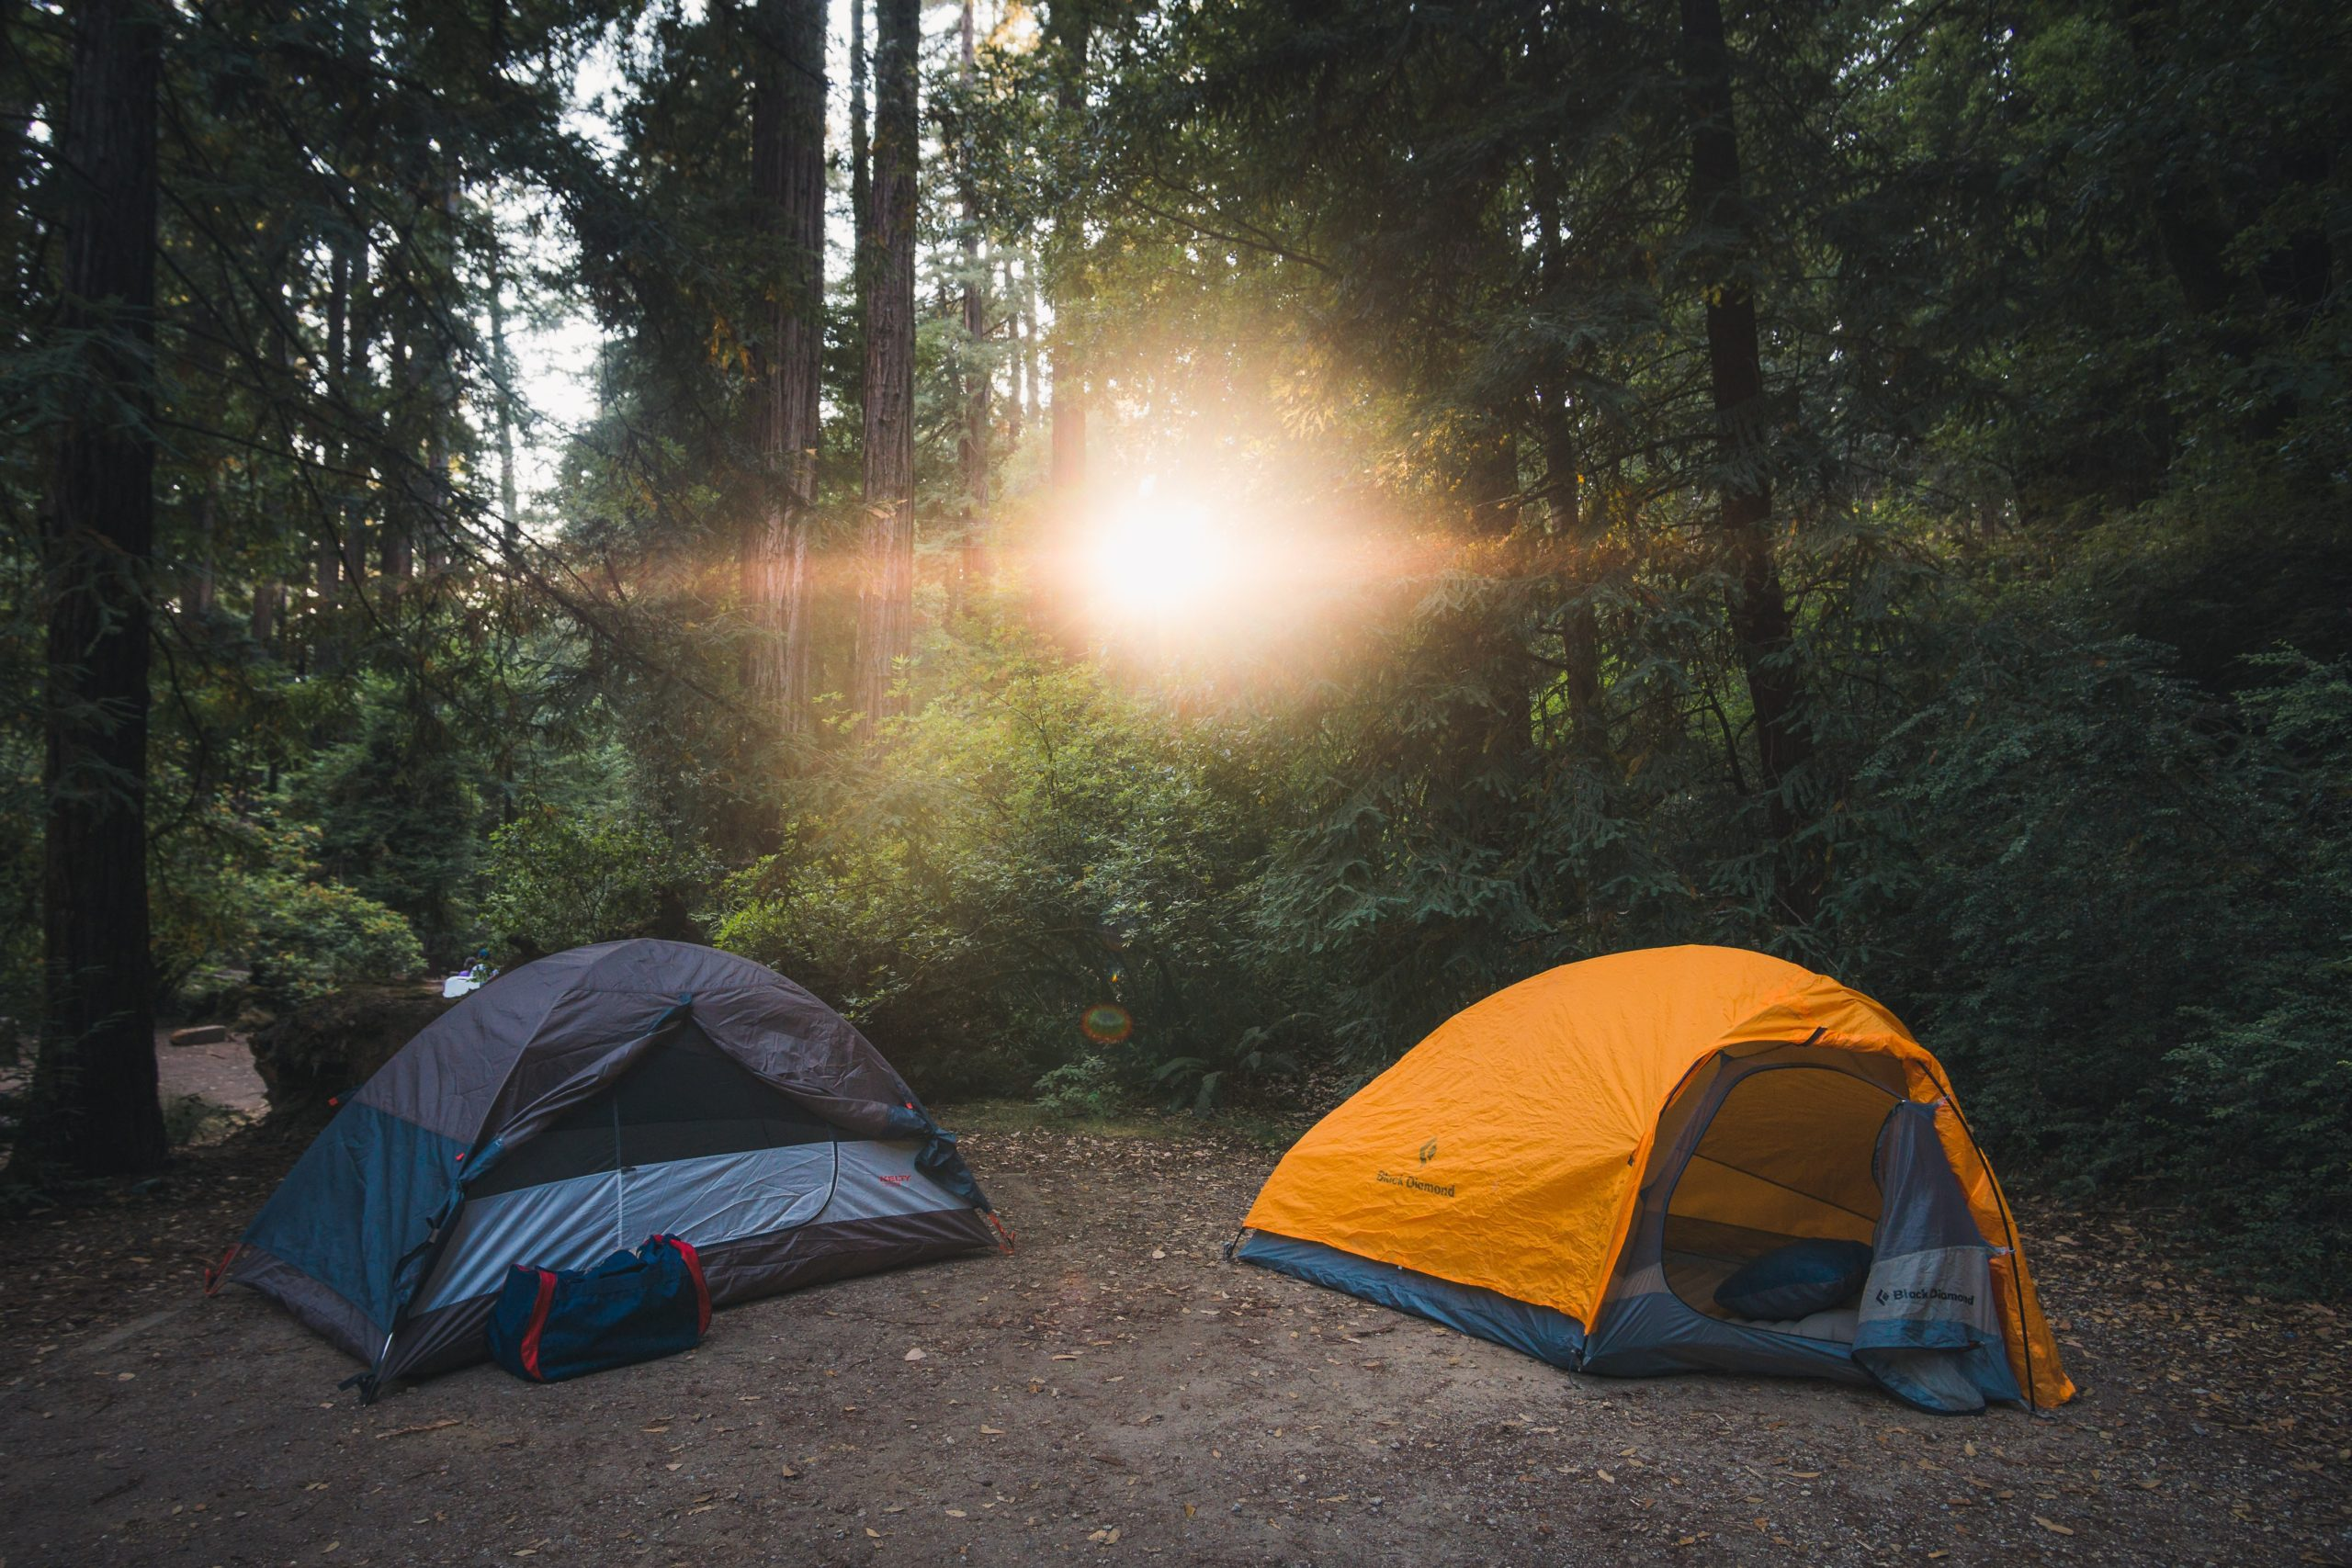 Two Camping Tents